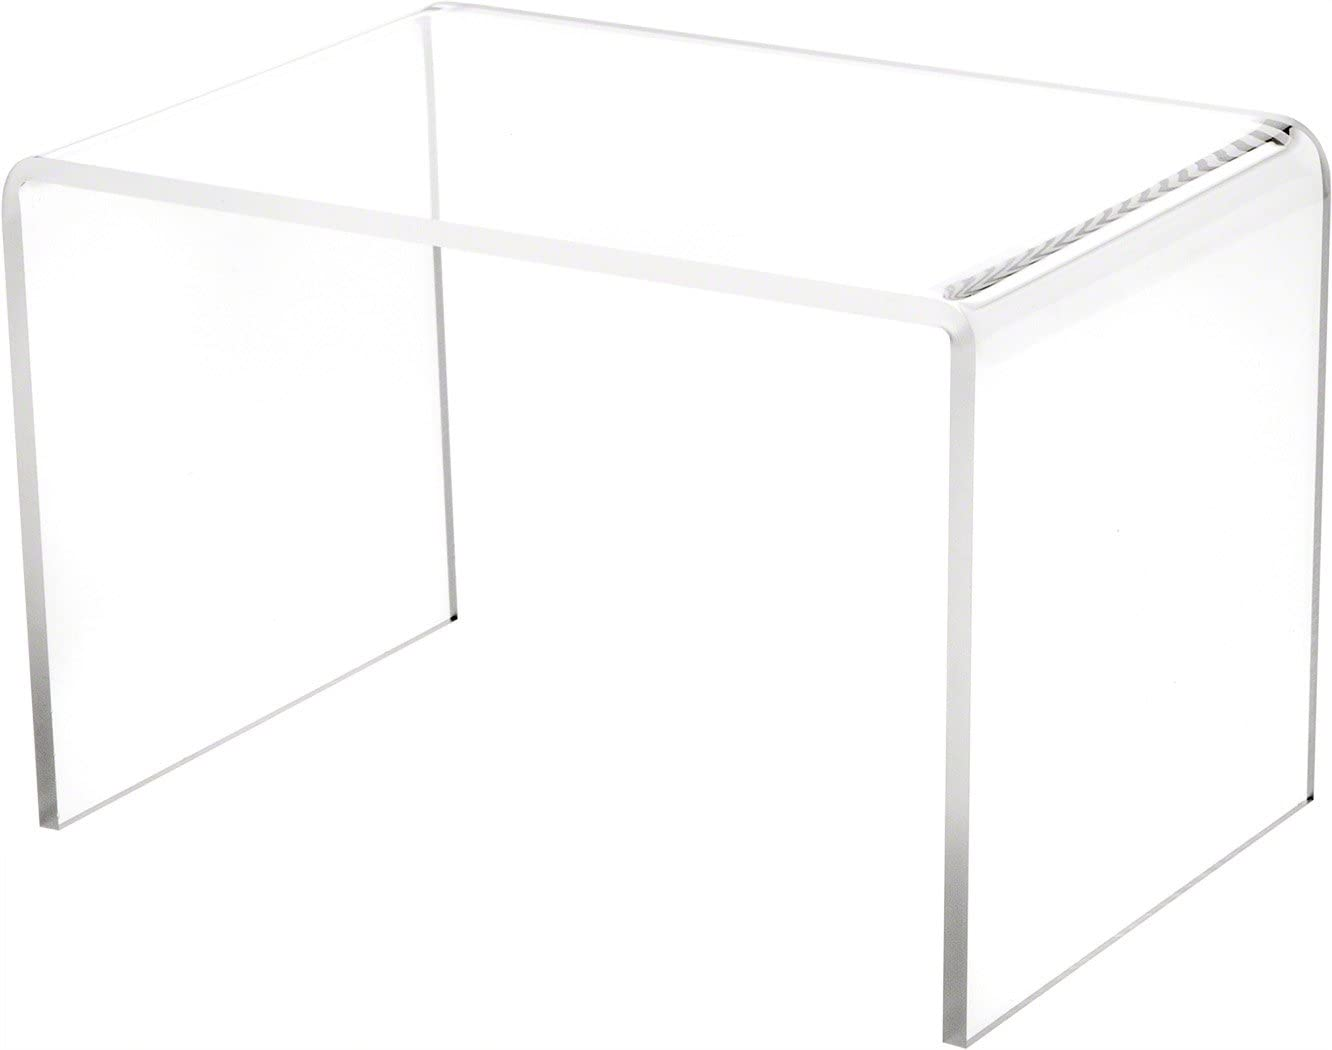 "Plymor Clear Acrylic Rectangular Display Riser, 6"" H x 9"" W x 6"" D (1/4"" Thick)"